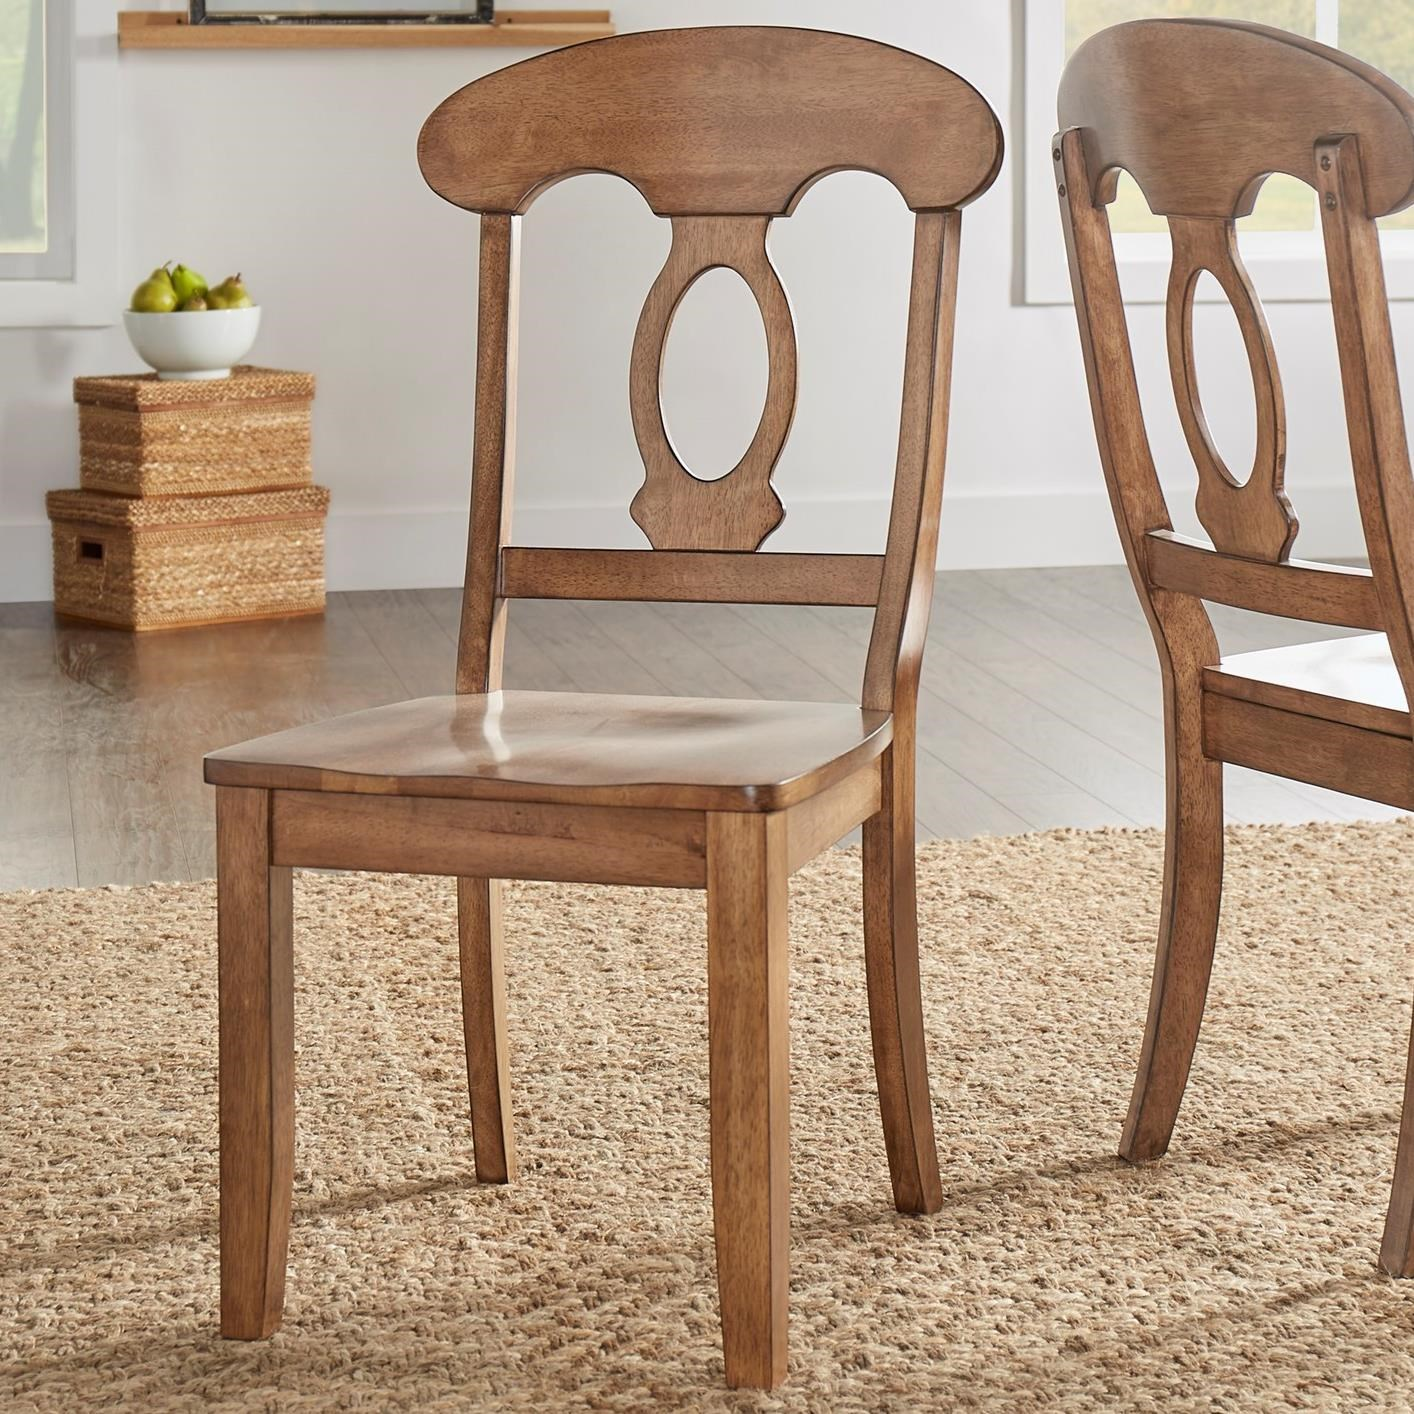 Homelegance 530 Dining Side Chair - Item Number: 530C4-AK